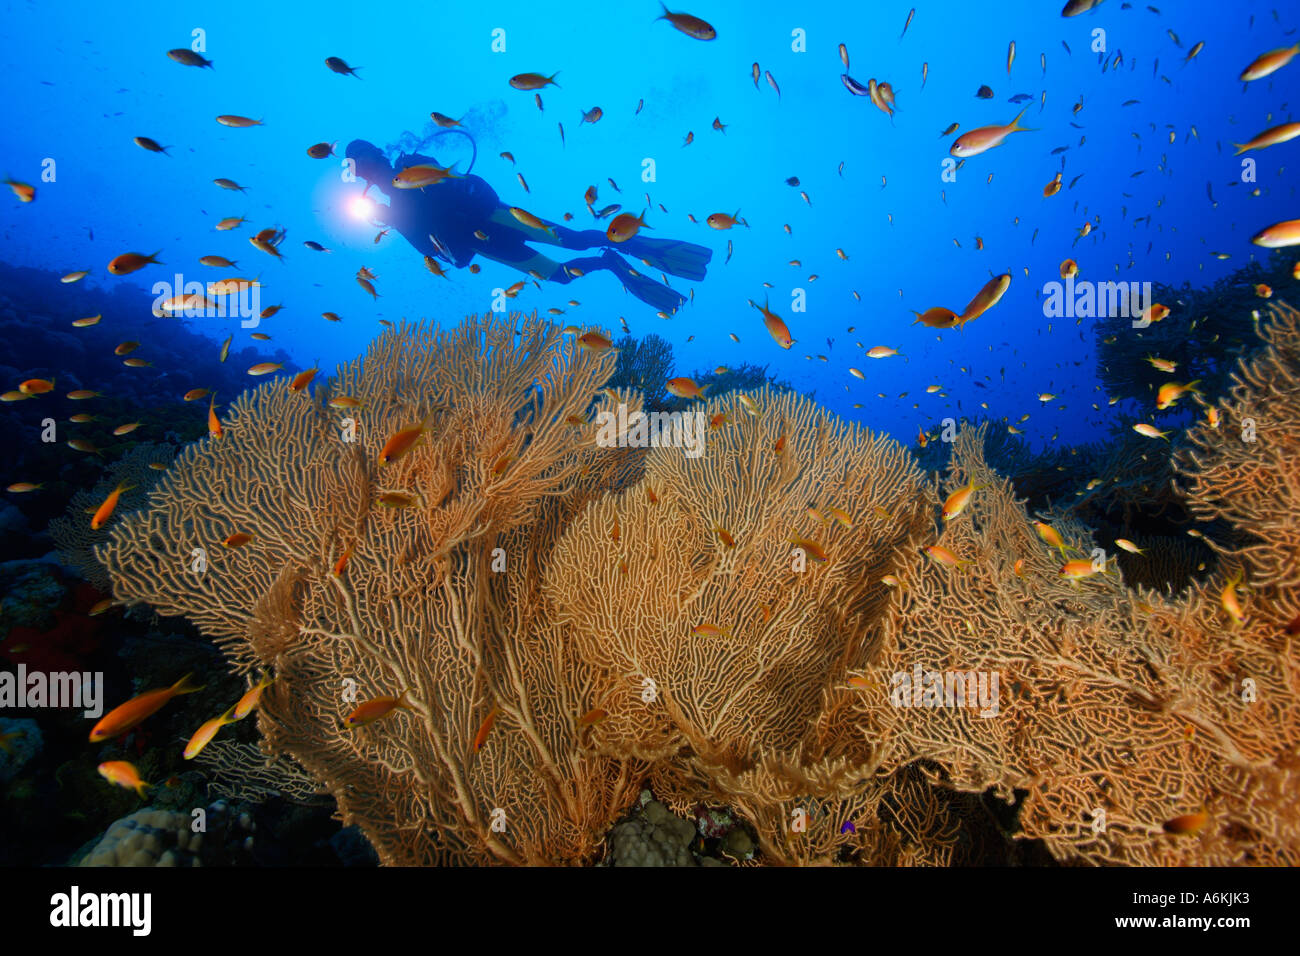 scuba diver with large gorgonian fans - Stock Image